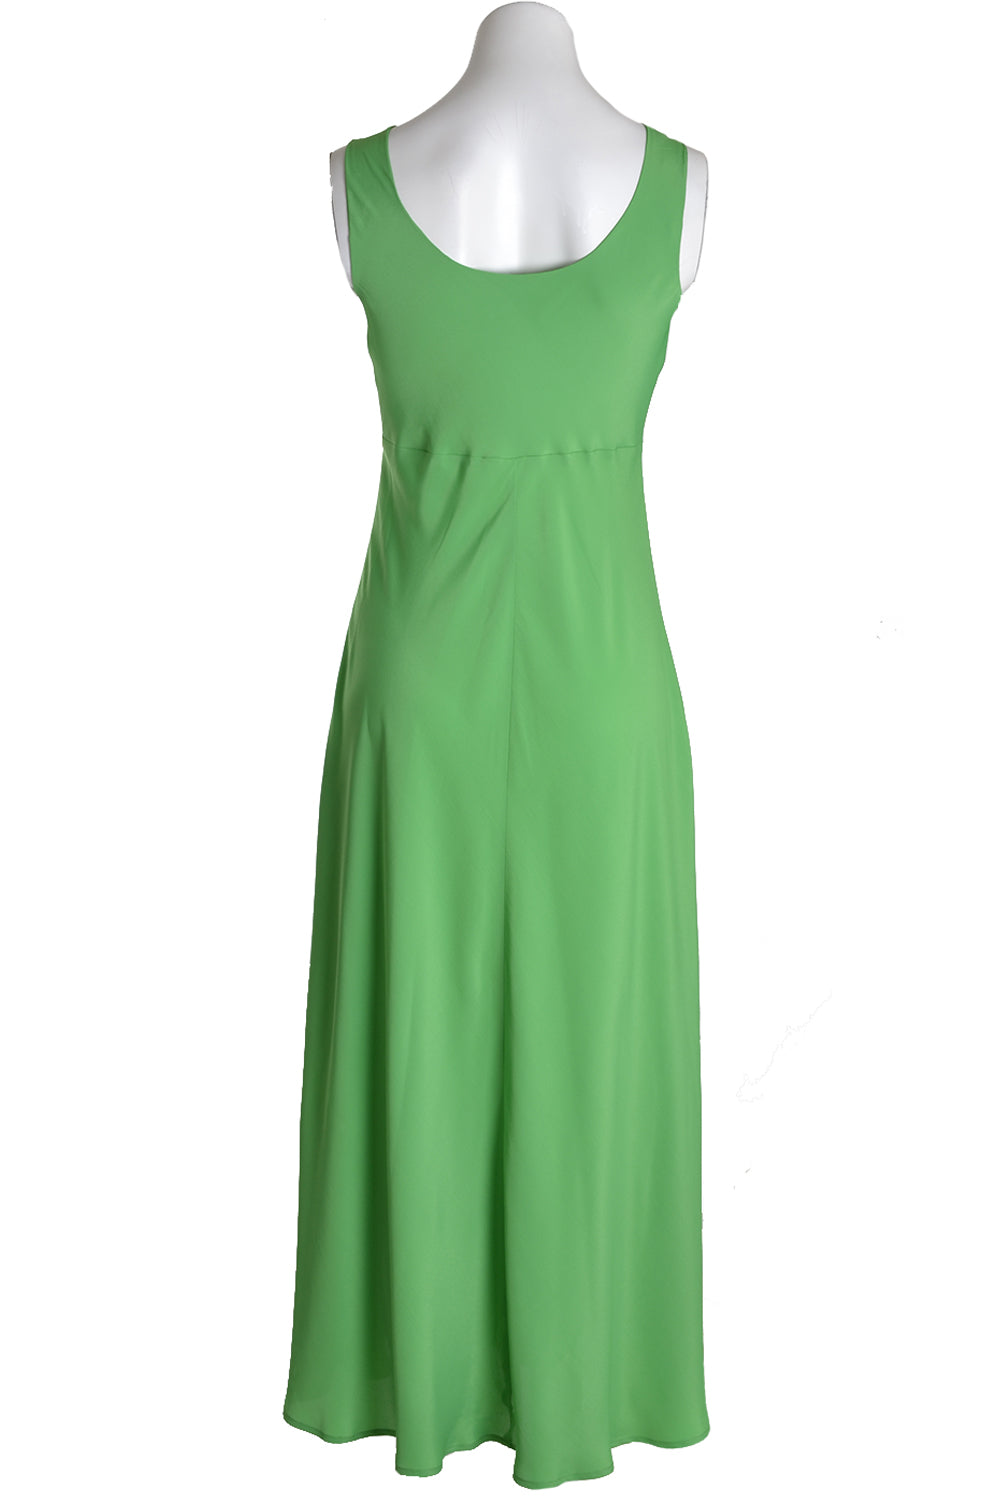 Ottodame Long Dress DA3879 Bias Silk Green Grass